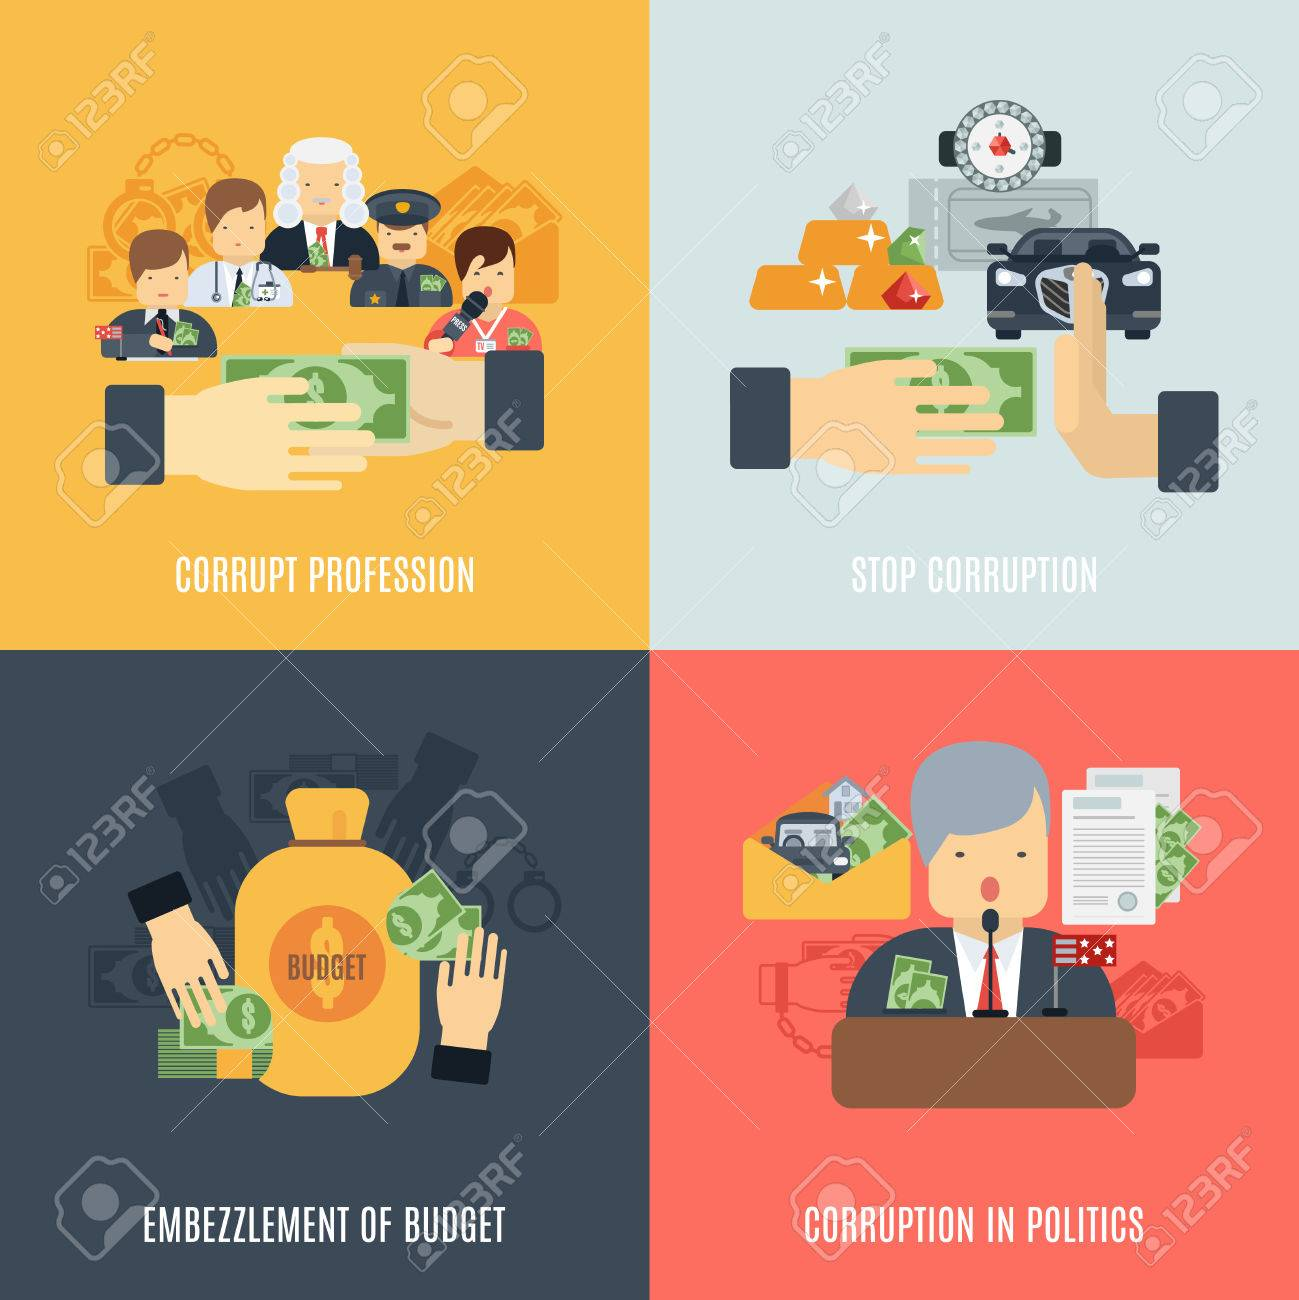 workplace discrimination images stock pictures royalty workplace discrimination corruption design concept set budget embezzlement flat icons isolated vector illustration